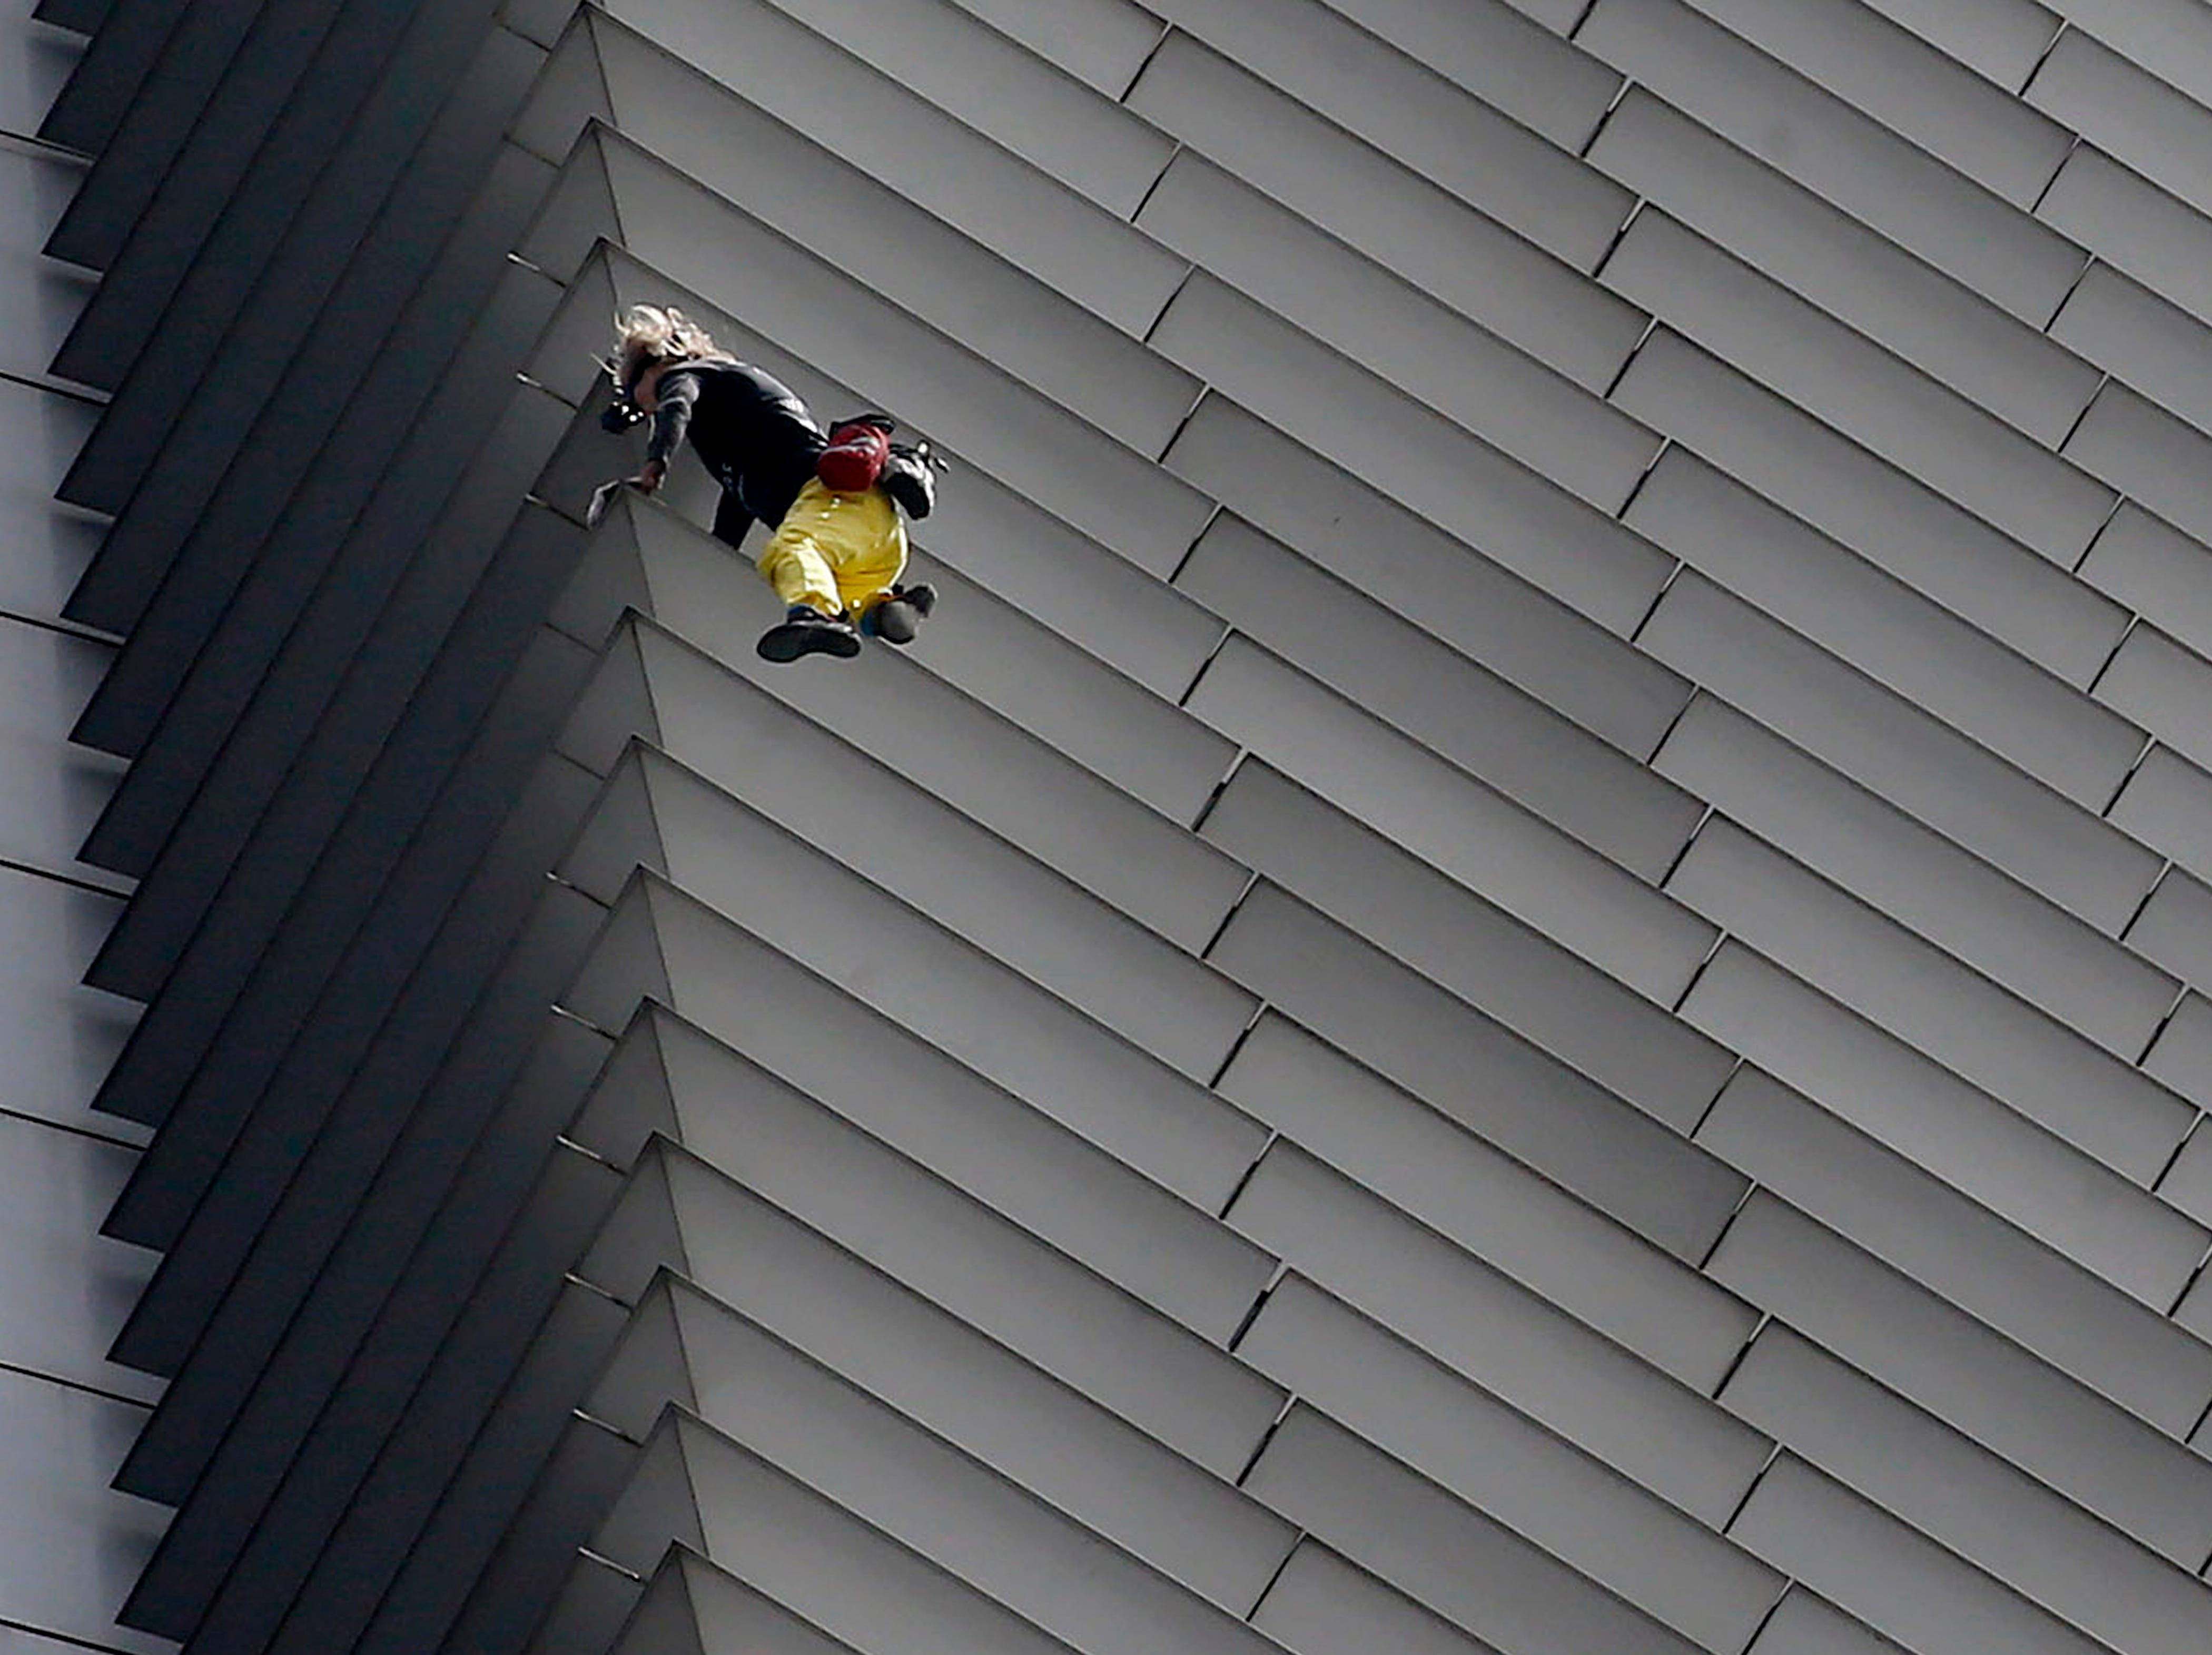 """French urban climber Alaine Robert, popularly known as """"Spiderman"""", climbs the 47-Storey GT Tower Building in Makati, Philippines, Tuesday, Jan. 29, 2019. Robert, who has scaled many skyscrapers and high-rise buildings all over the world, made his Manila climb in less than two hours to the cheers of the crowd below. He was immediately taken into police custody for investigation."""